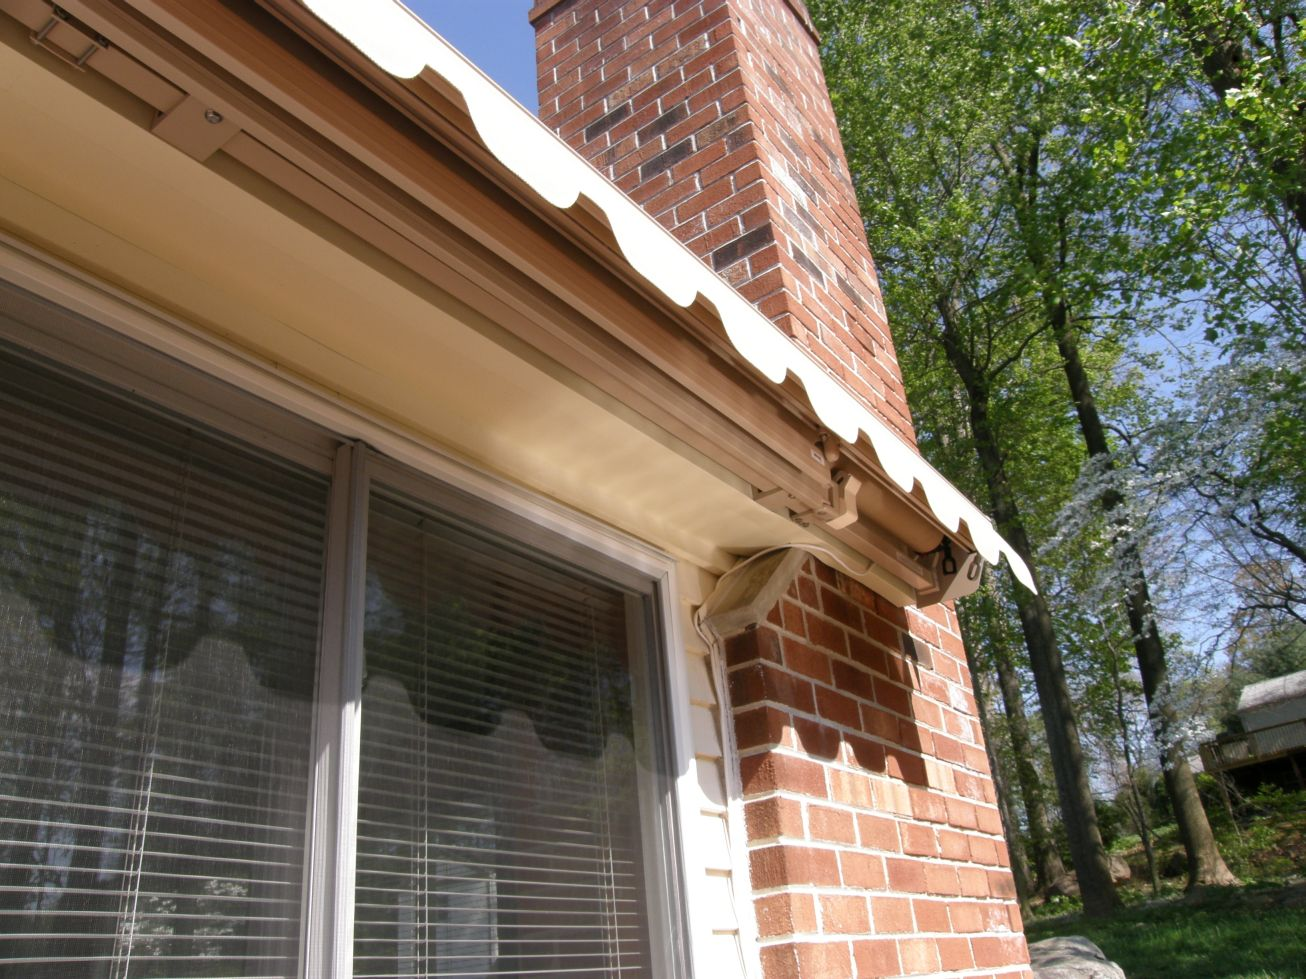 unusual mounting of motorized retractable awning